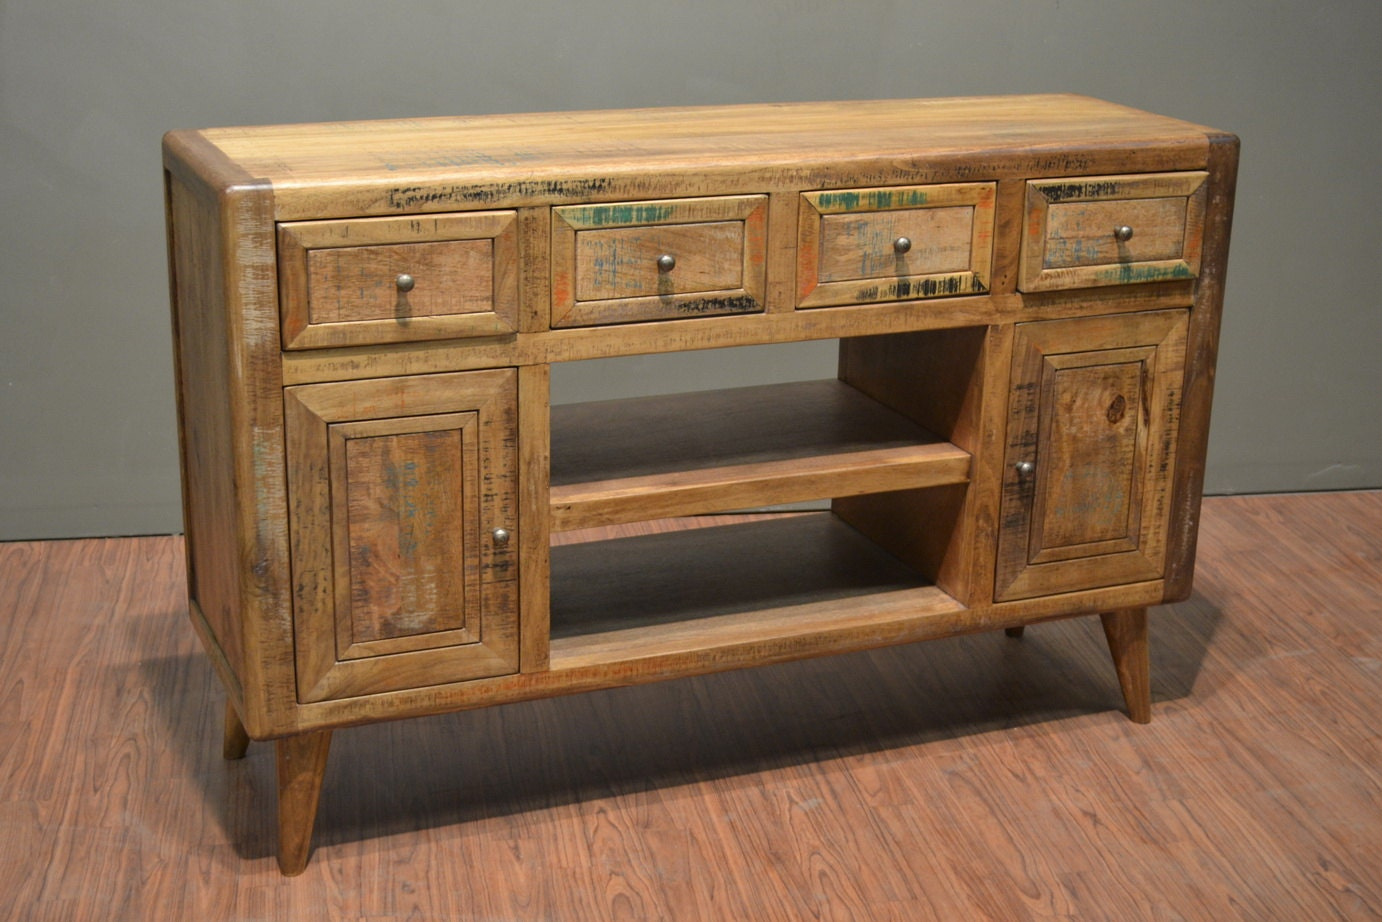 rustic solid wood retro style tv stand media console. Black Bedroom Furniture Sets. Home Design Ideas